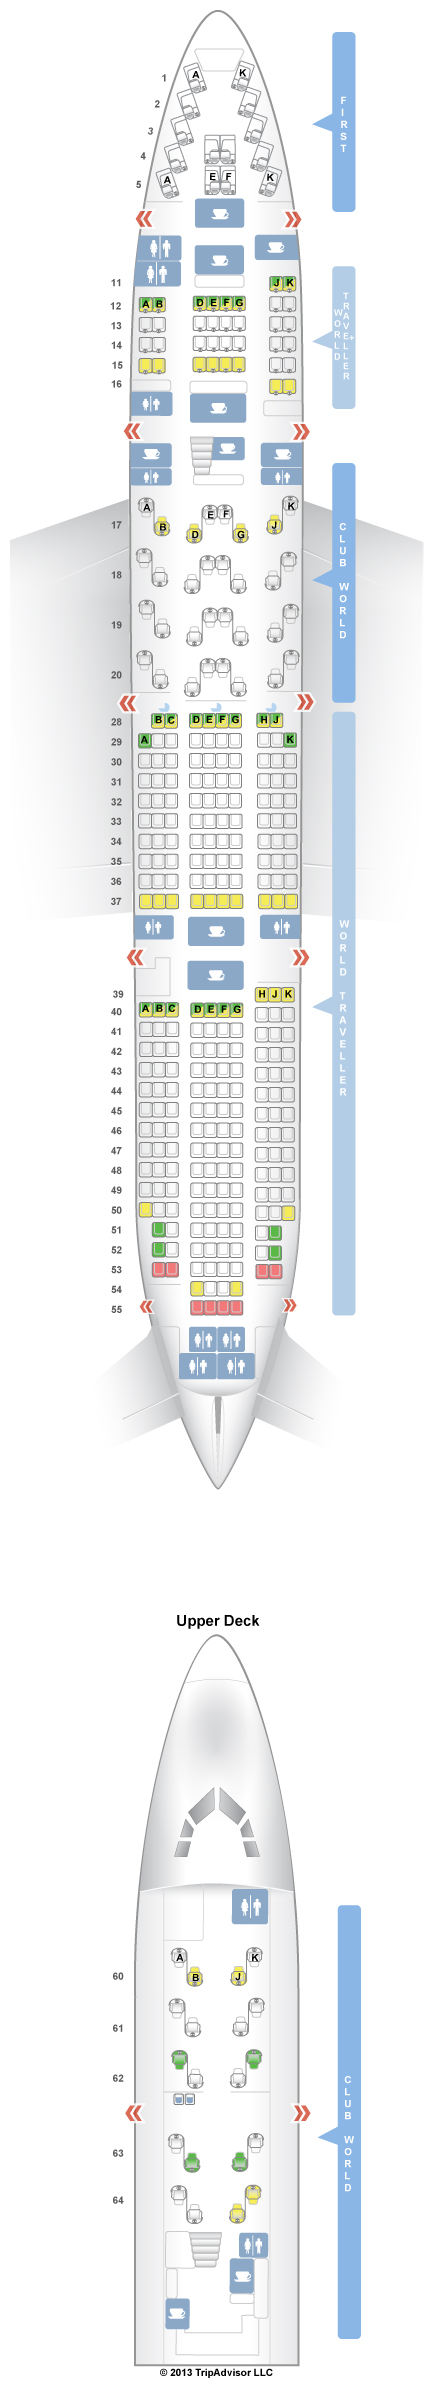 SeatGuru Seat Map British Airways Boeing V - Us airways seat map